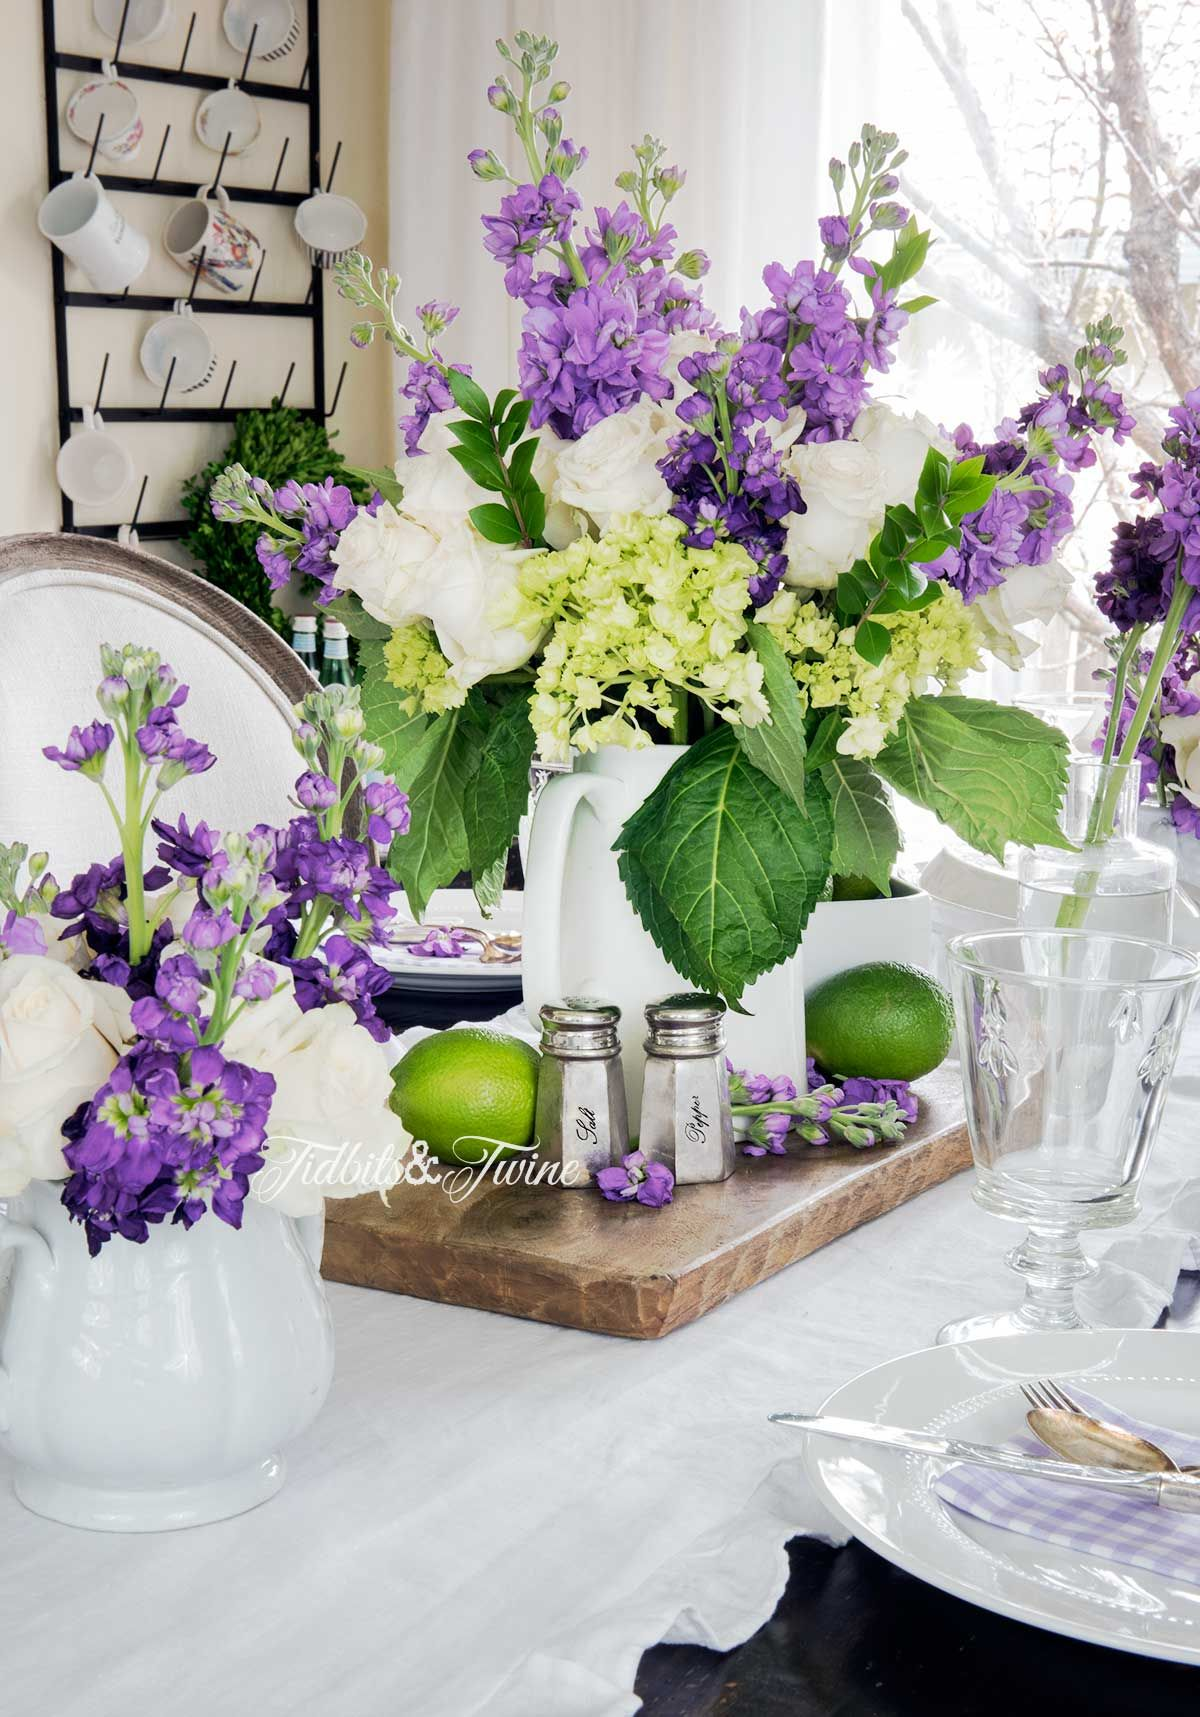 Tidbits Twine Spring Dining Room Table Ideas 2 Site 4 Spring Table Centerpieces Spring Table Purple Dining Room